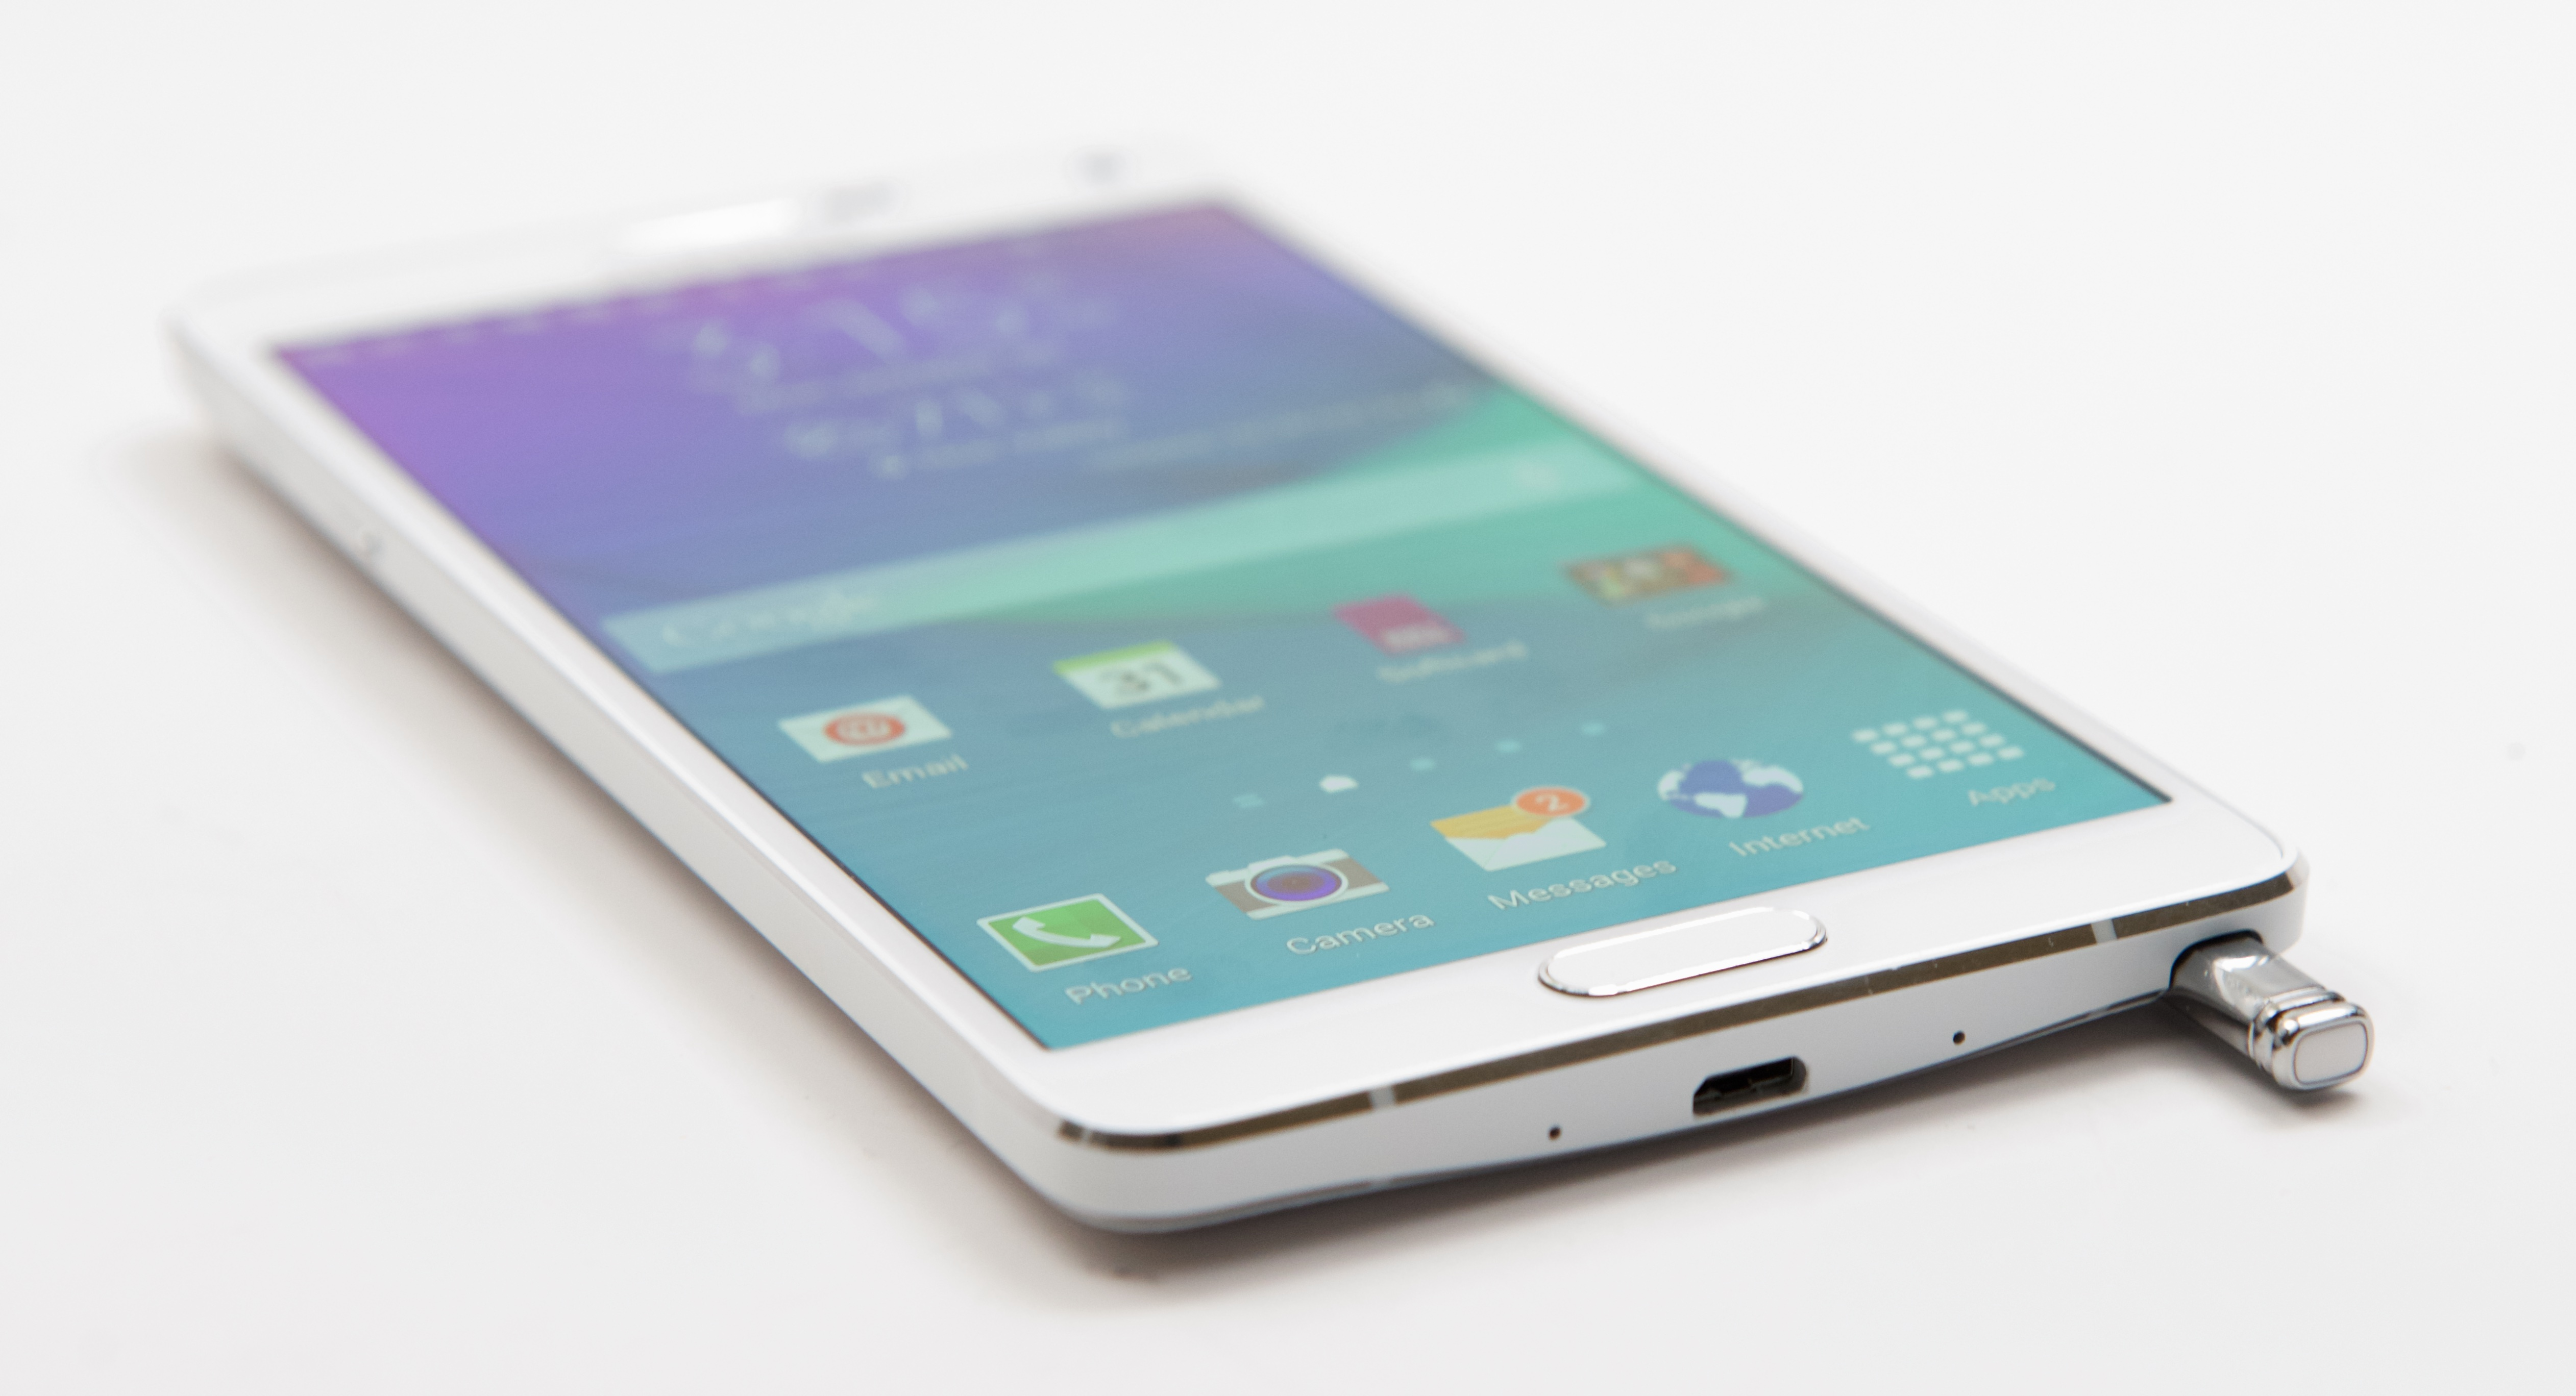 A Specific Rogers Galaxy Note 4 Lollipop Release Date Isn't Clear Yet  Though With A Galaxy Note 4 Lollipop Release Now Confirmed For This Month,